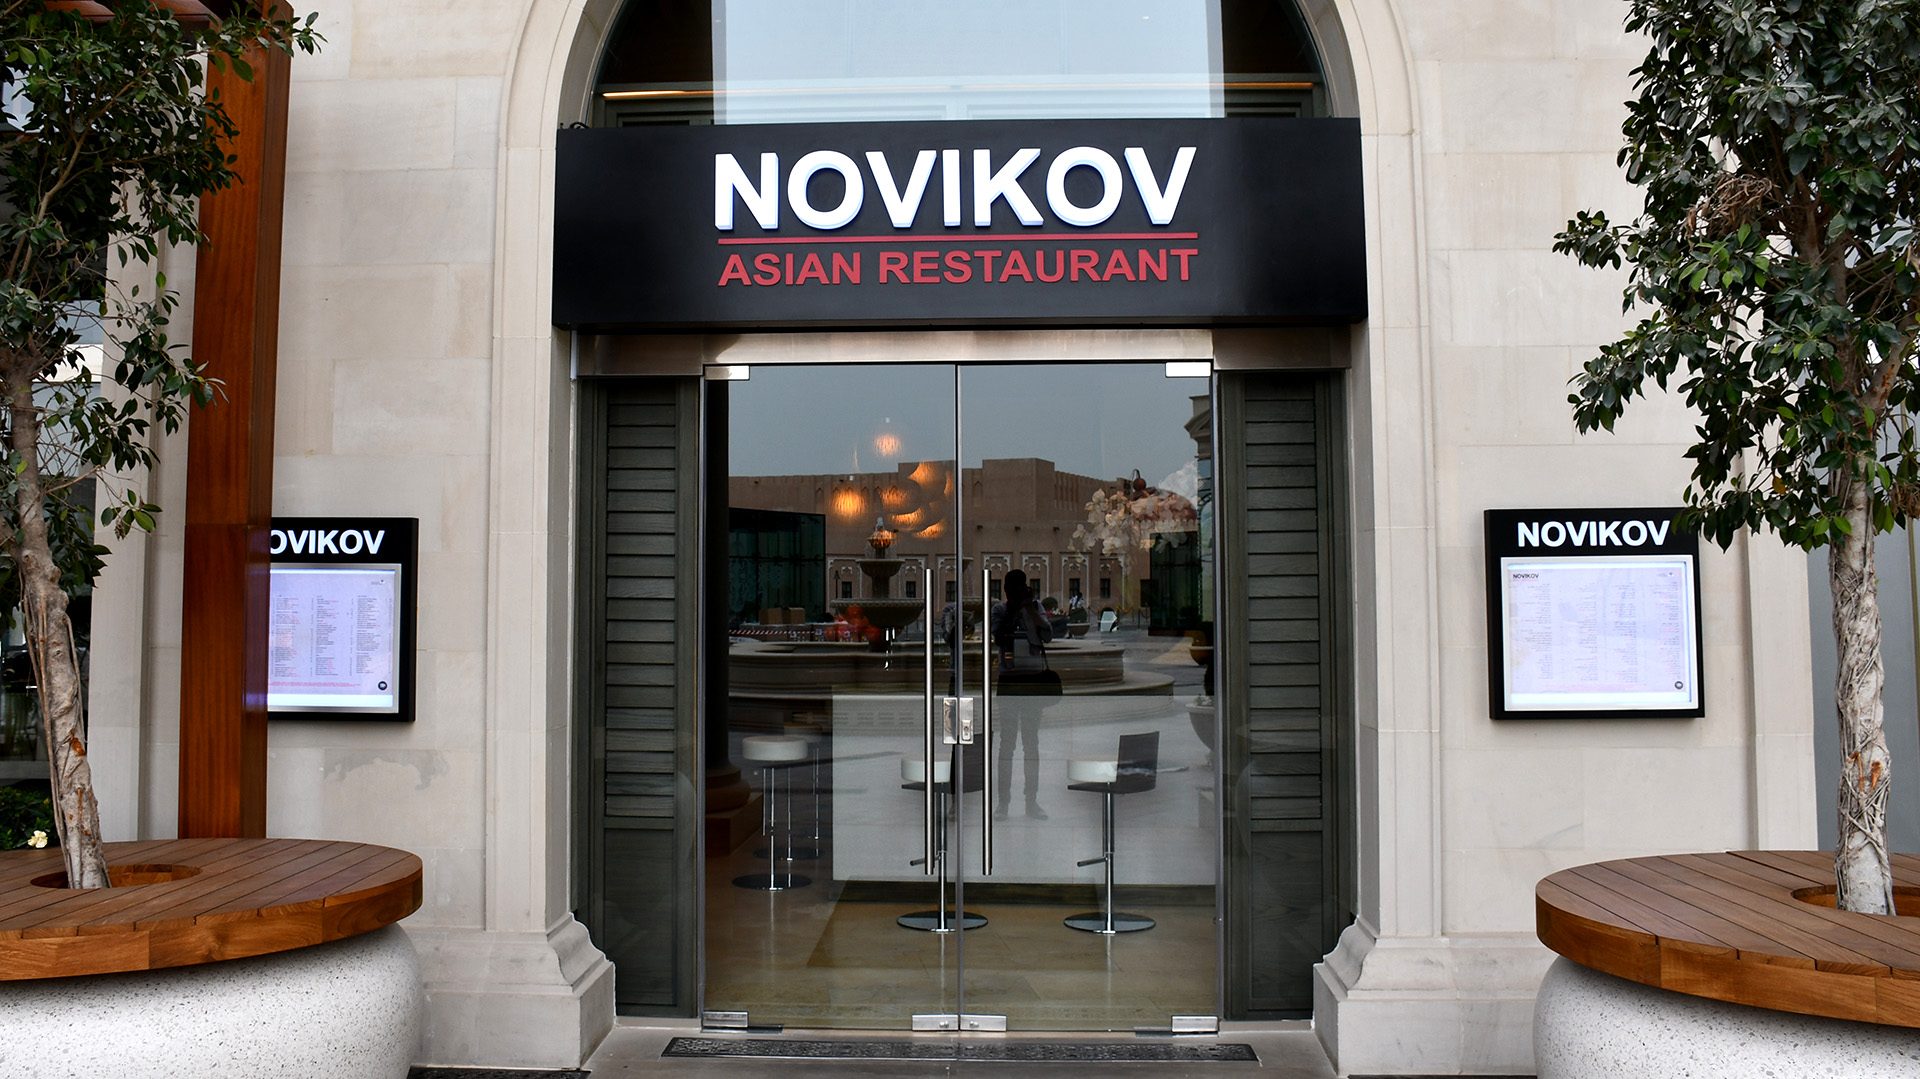 LED Lit Push Through shopfront signage for Novikov Asian Restaurant in Katara, fabricated and installed by ME Visual, Qatar